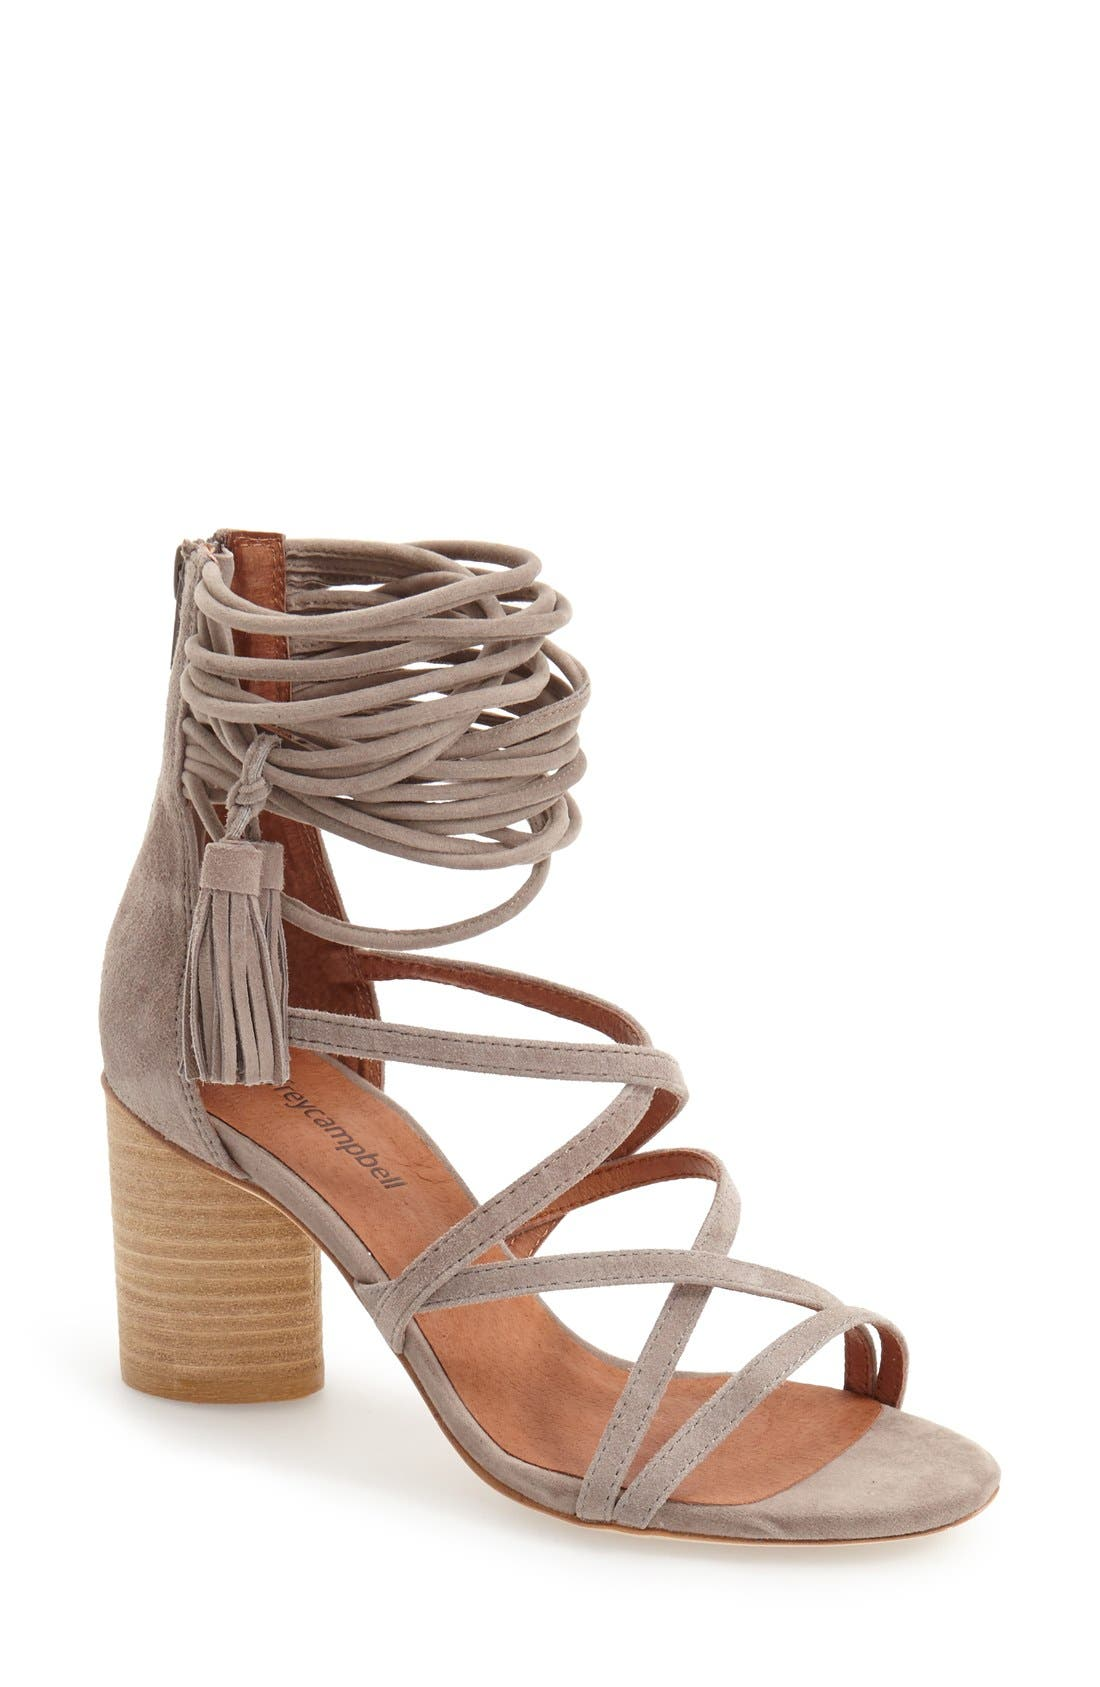 'Despina' Strappy Sandal,                         Main,                         color, TAUPE SUEDE